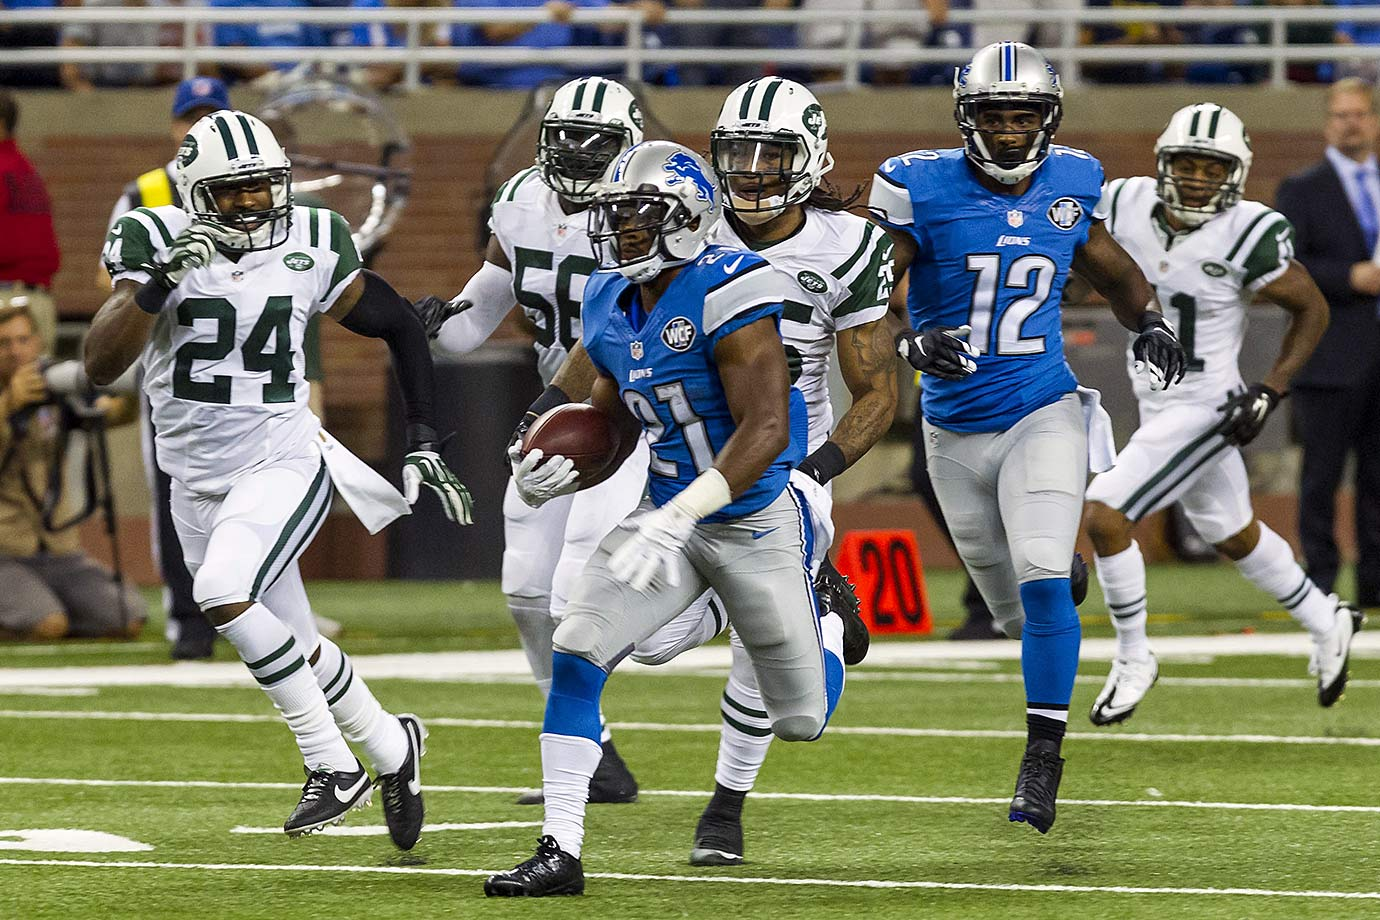 Abdullah could give the Lions a menacing trio of playmakers, joining Calvin Johnson and Golden Tate. He wasn't the first running back off the board in the draft, but you could argue he provides a better chance for profit than either Melvin Gordon or Todd Gurley in fantasy leagues this season. If all breaks his way, Abdullah could be a top-20 running back as a rookie.